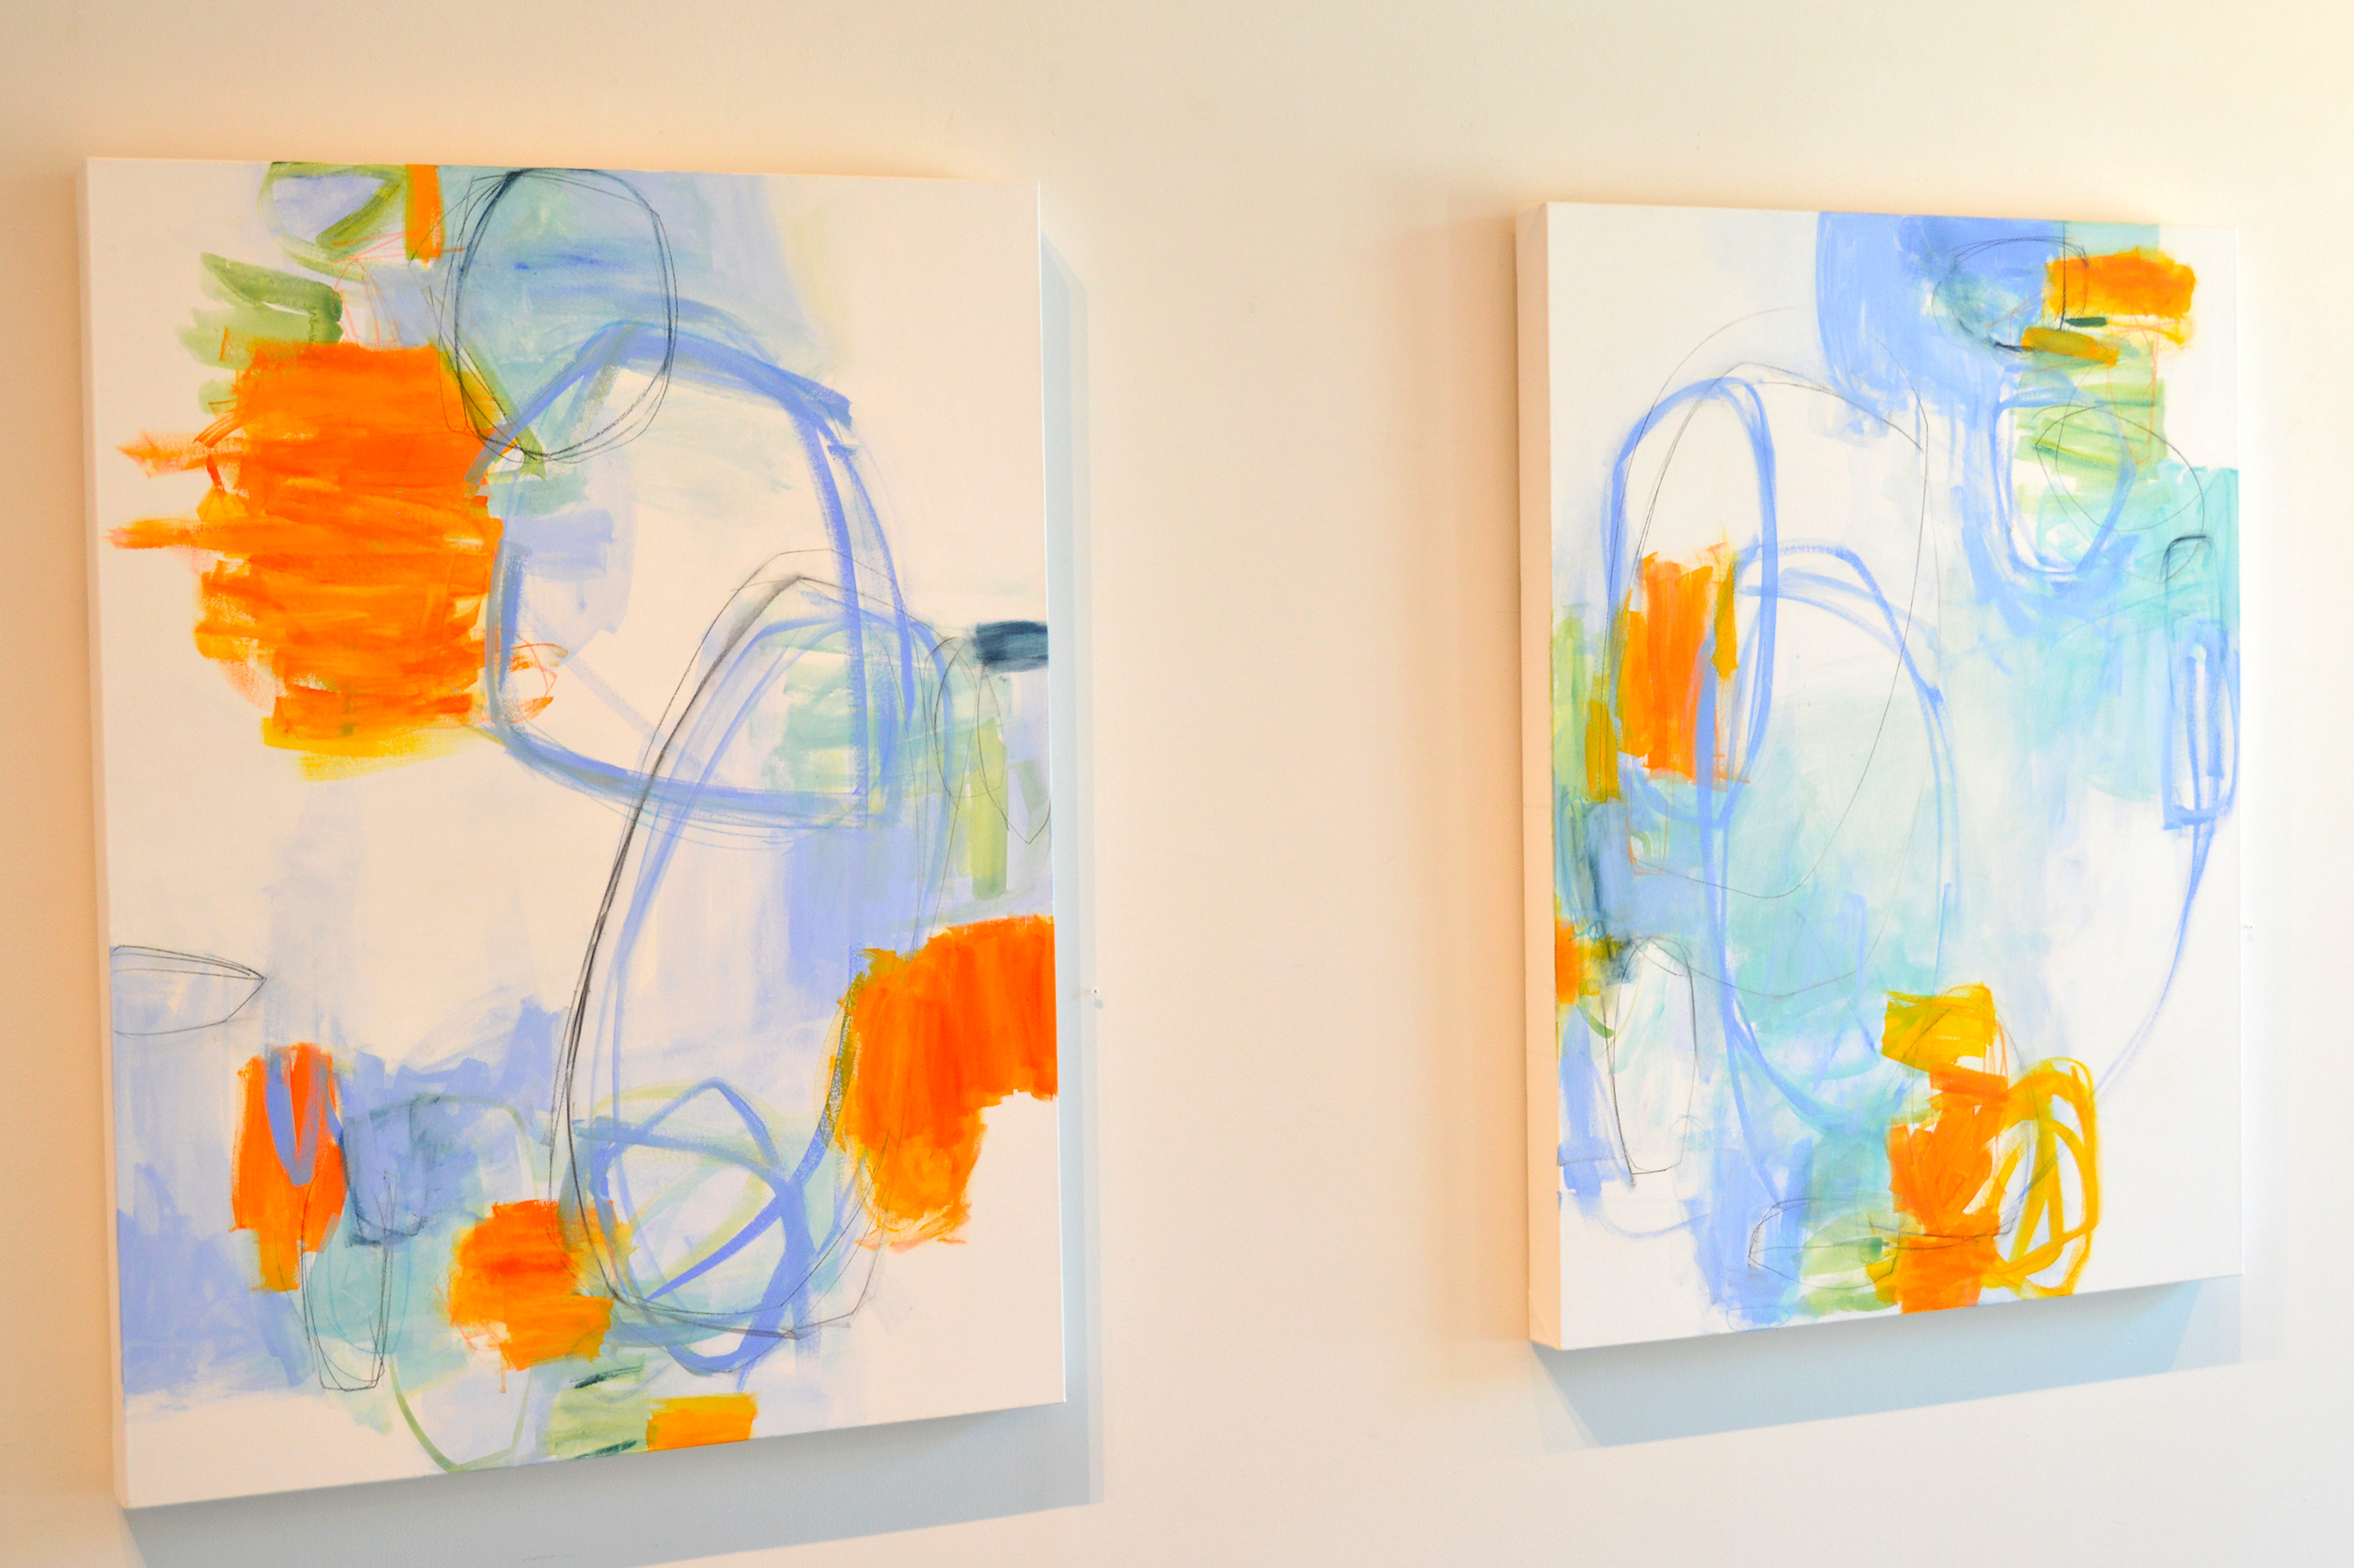 Antidote I & II (diptych) by Julia Rymer | ArtworkNetwork.com